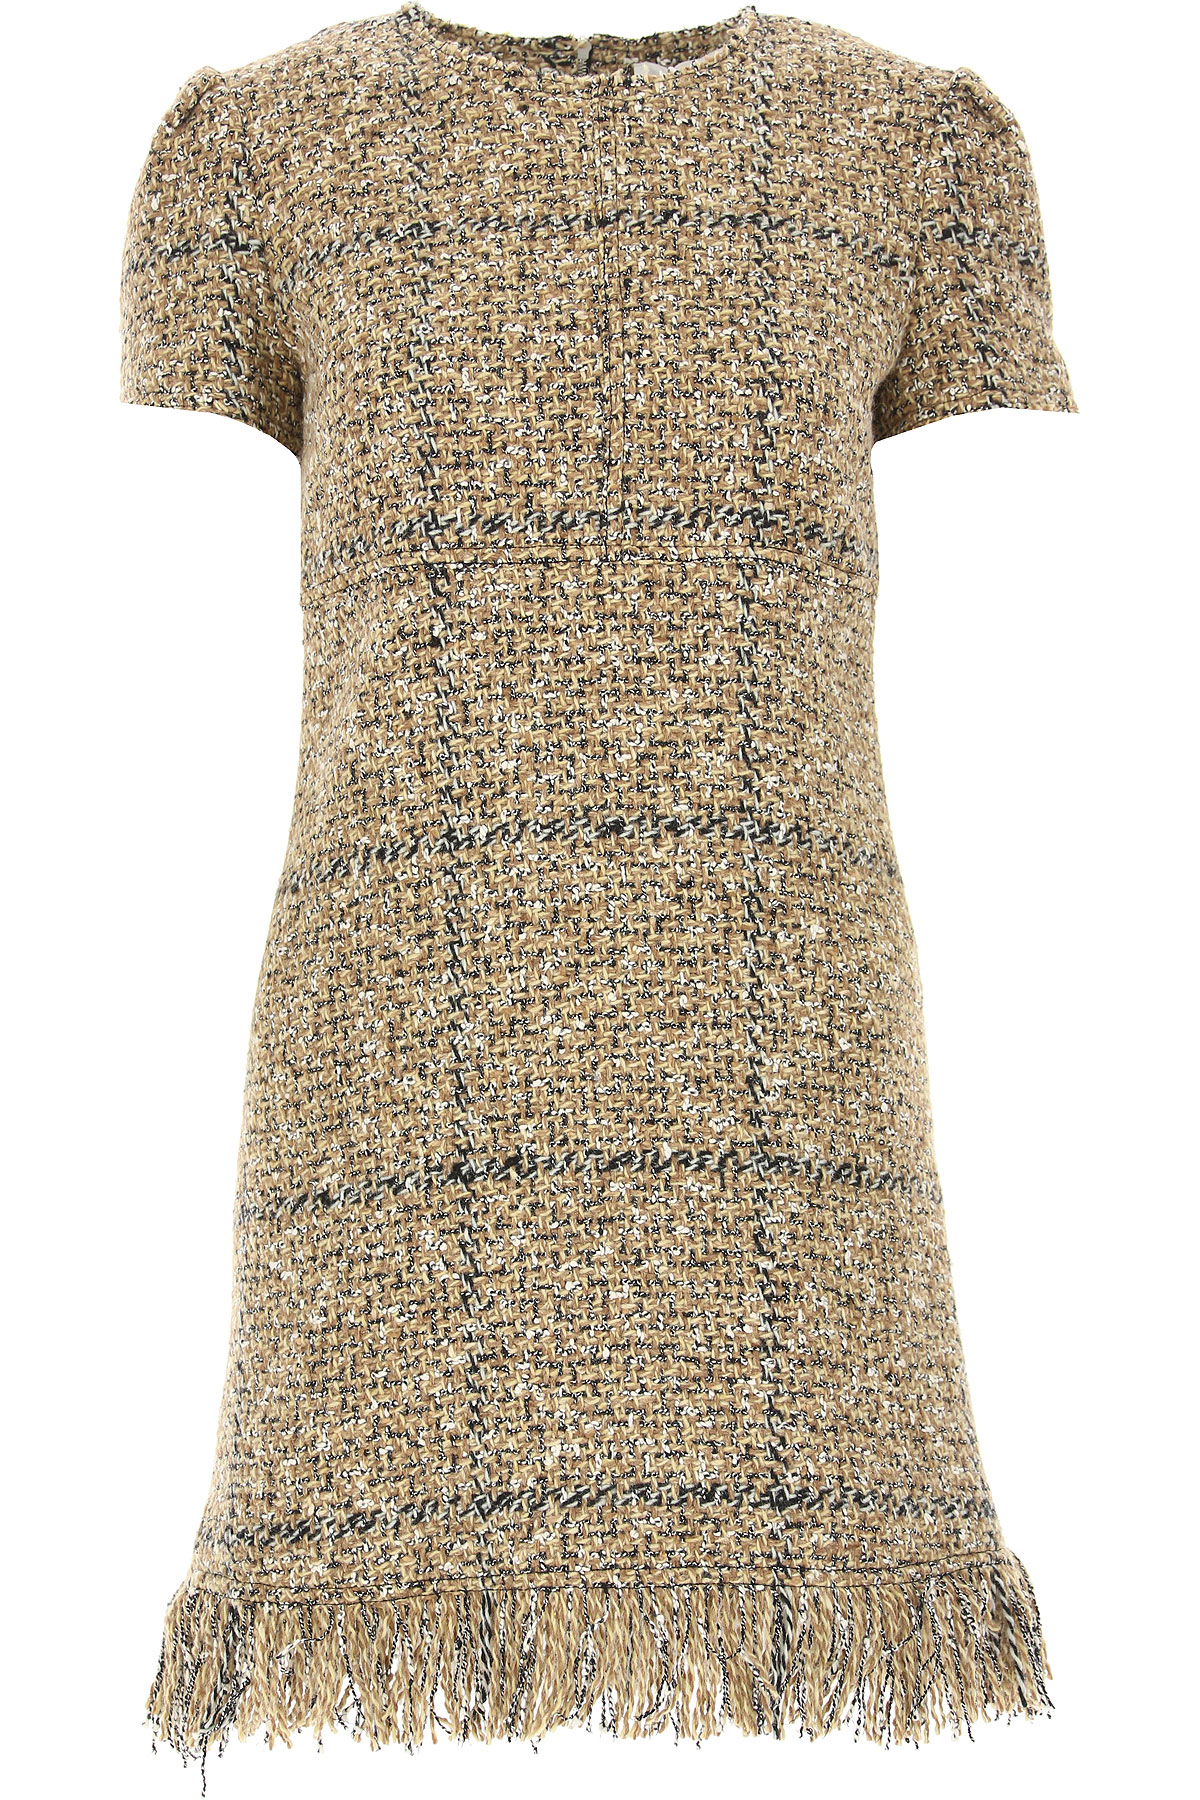 Image of Sonia Rykiel Dress for Women, Evening Cocktail Party, Beige, Wool, 2017, 2 4 6